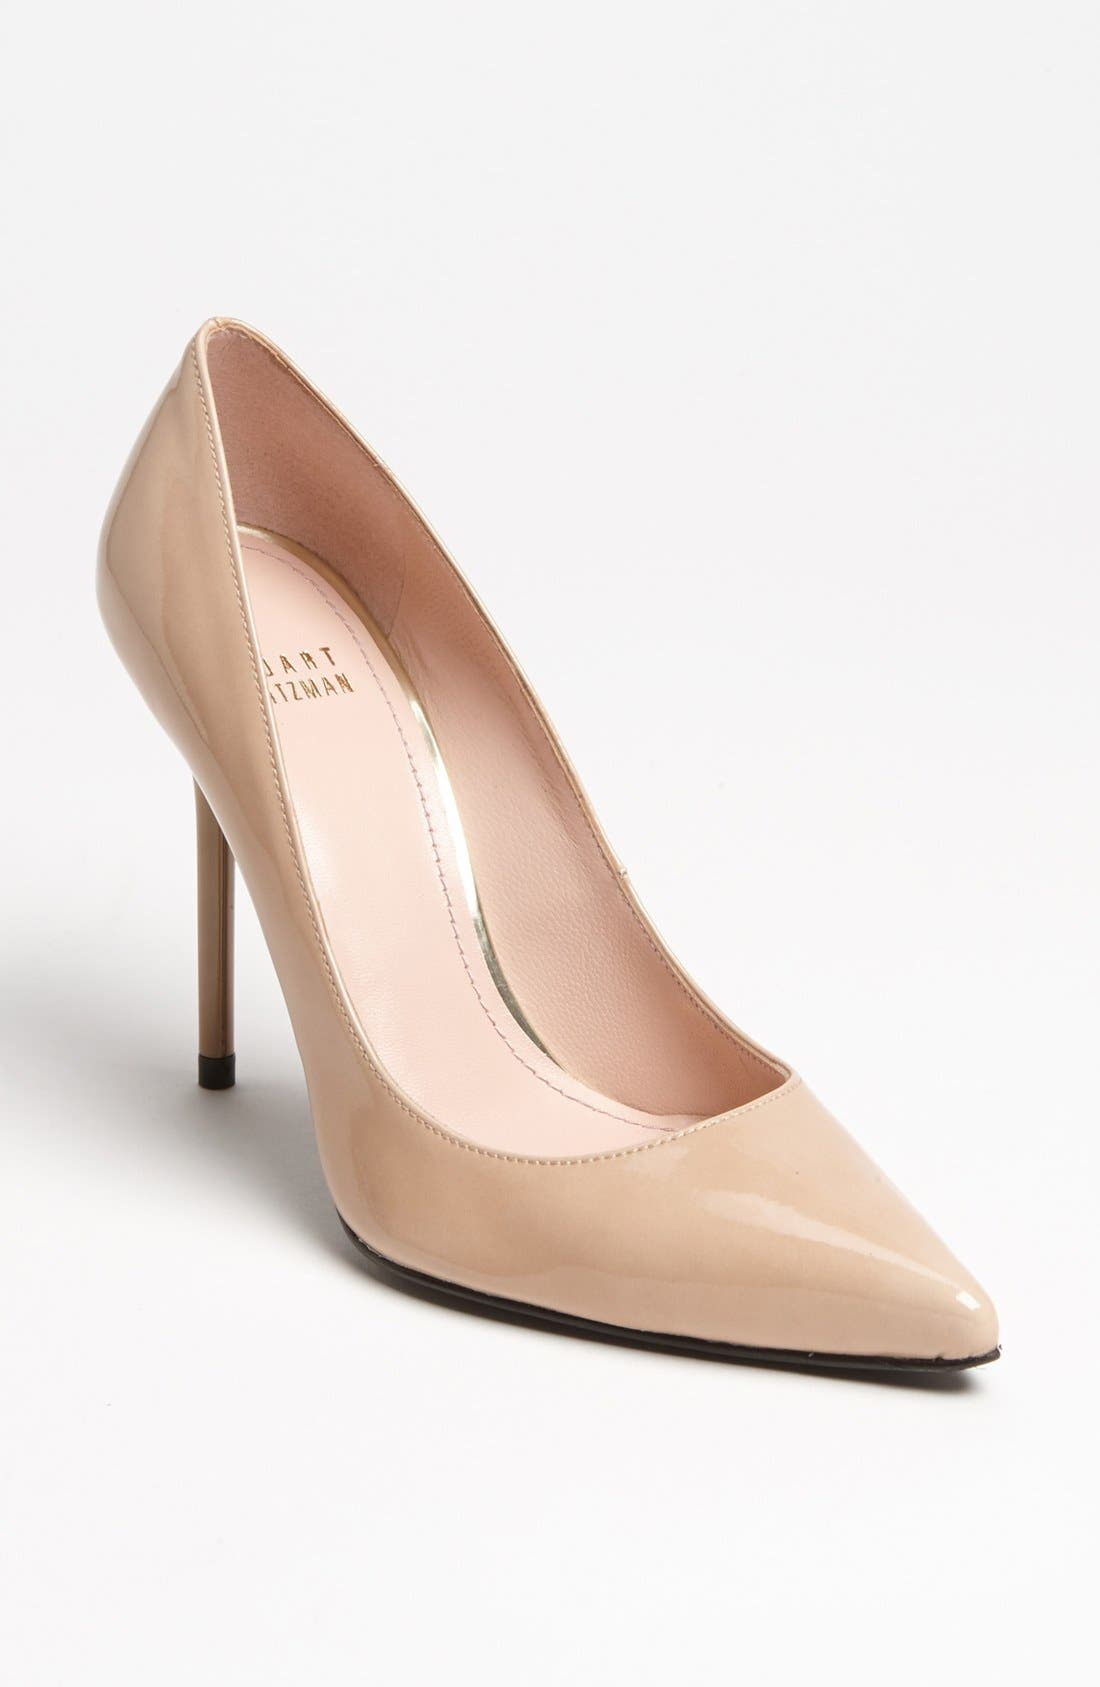 Alternate Image 1 Selected - Stuart Weitzman 'Nouveau' Pump